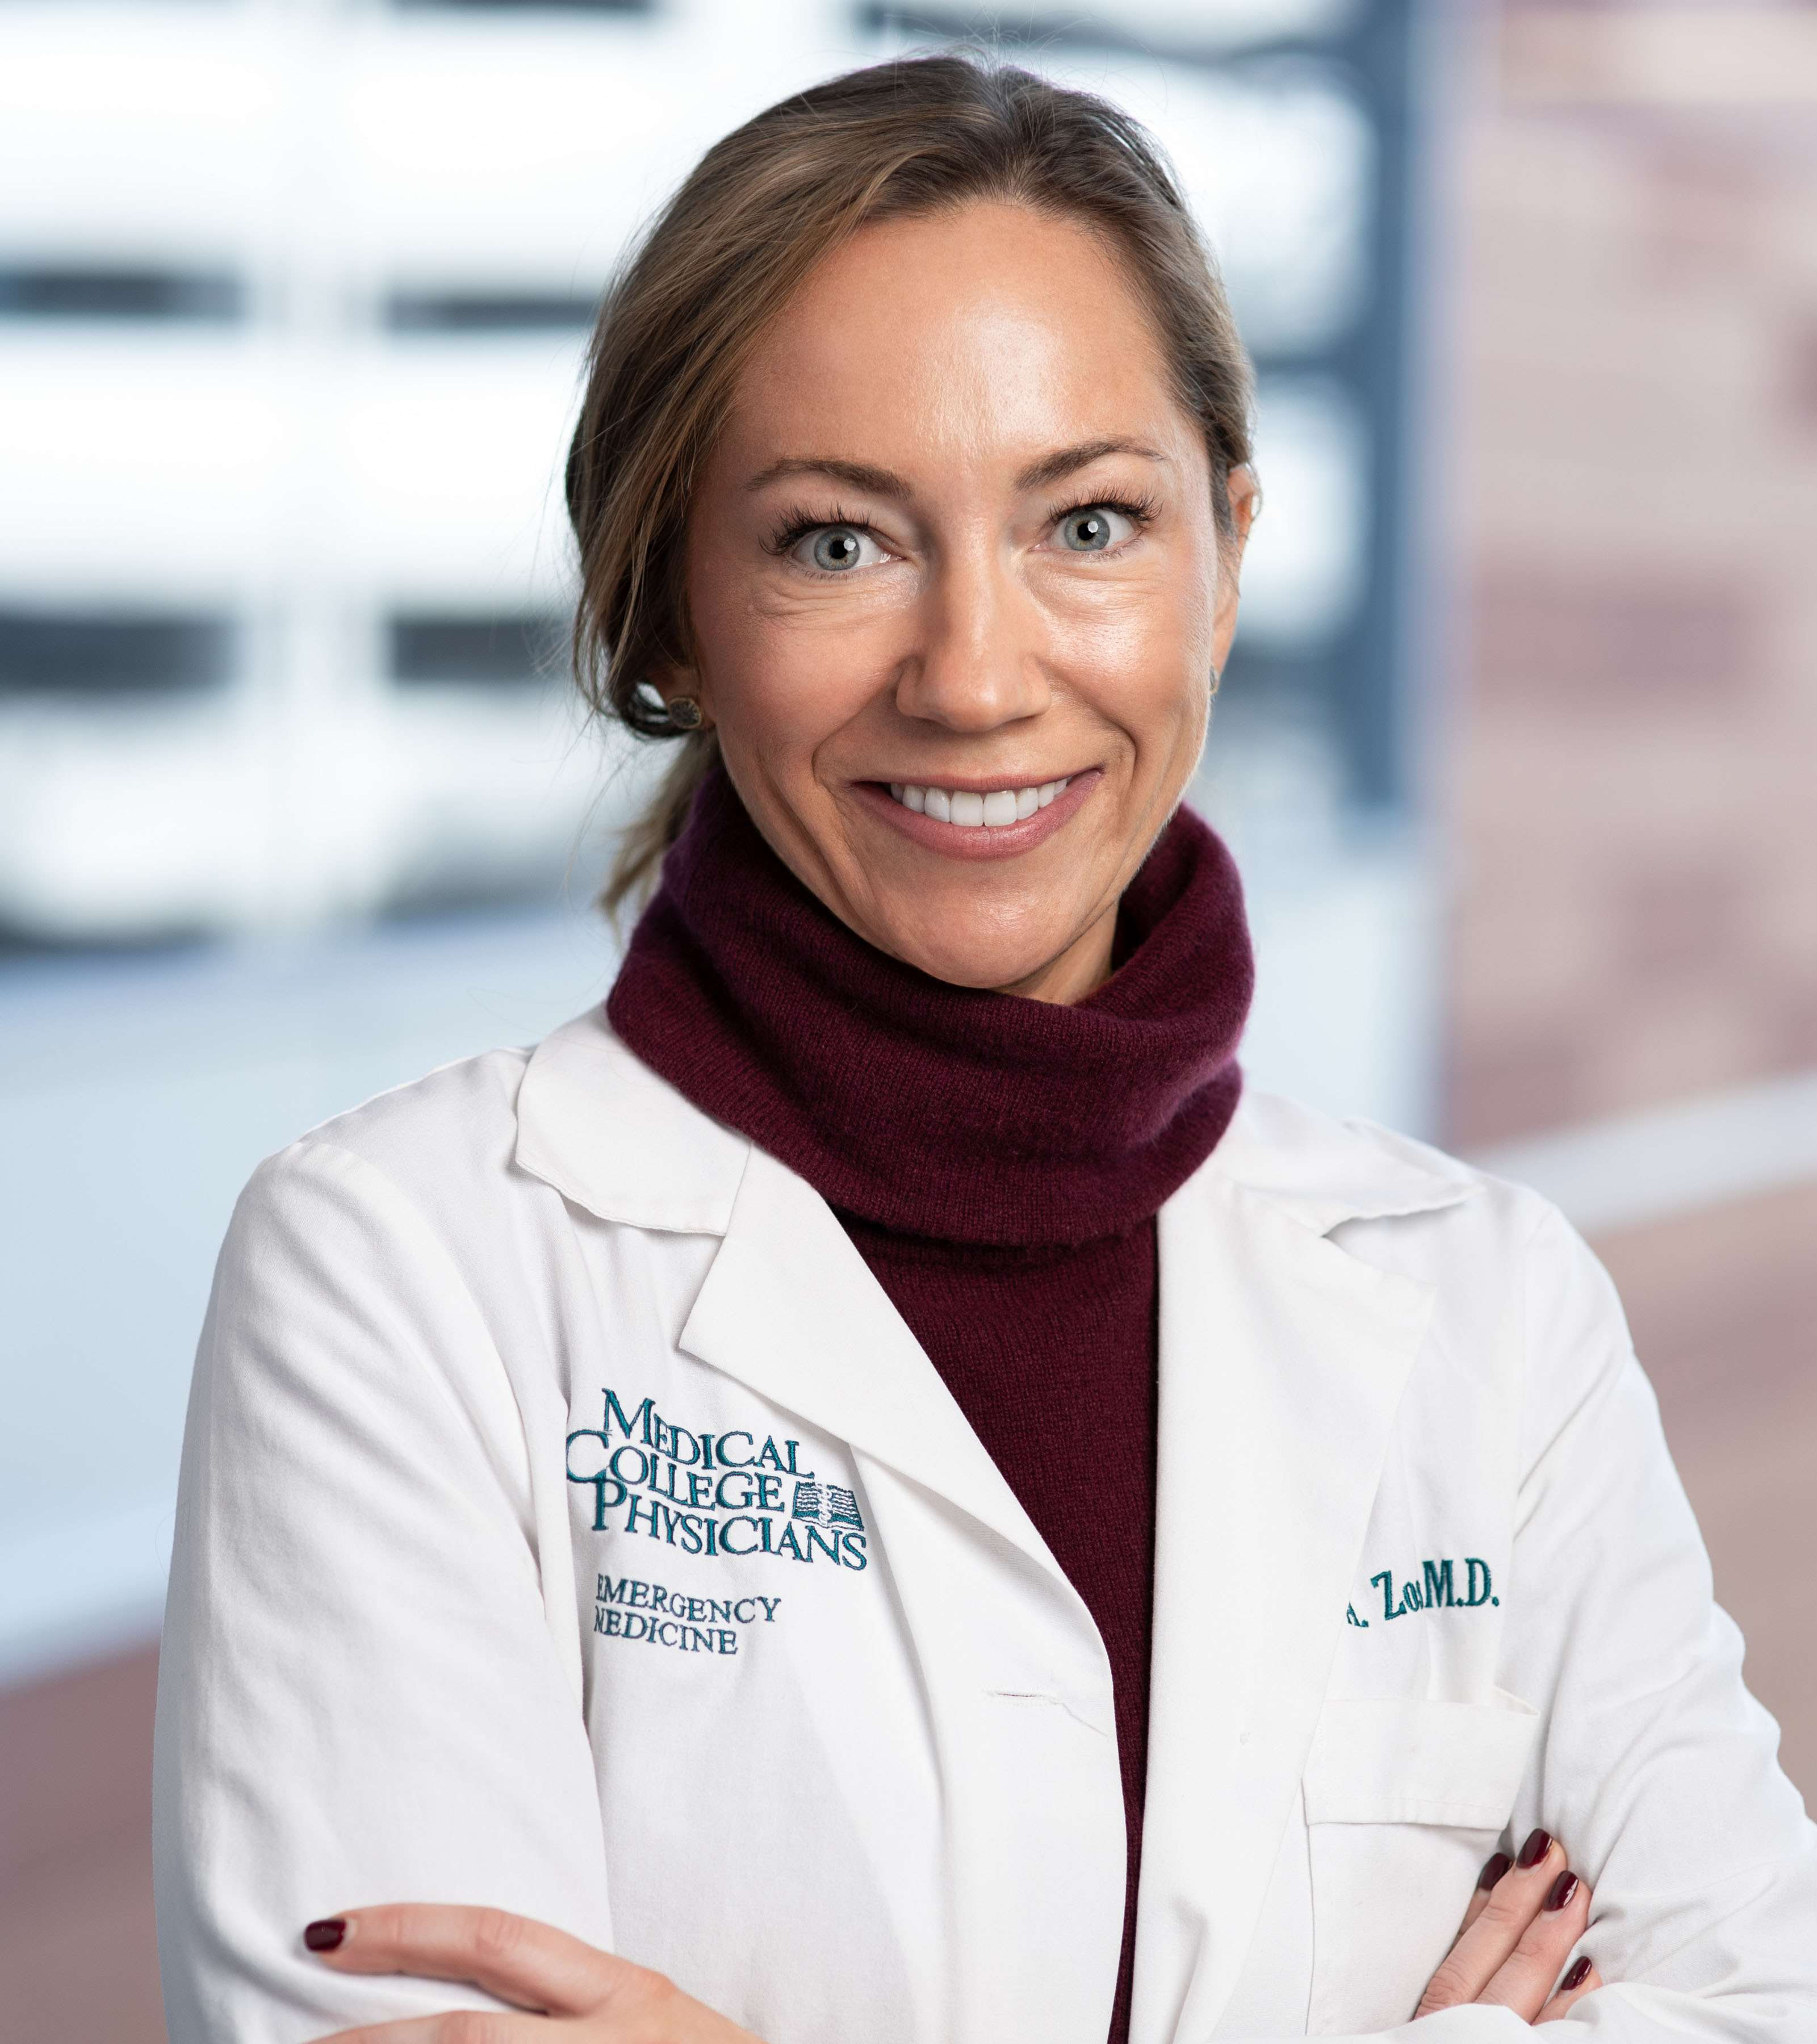 Amy Zosel, MD